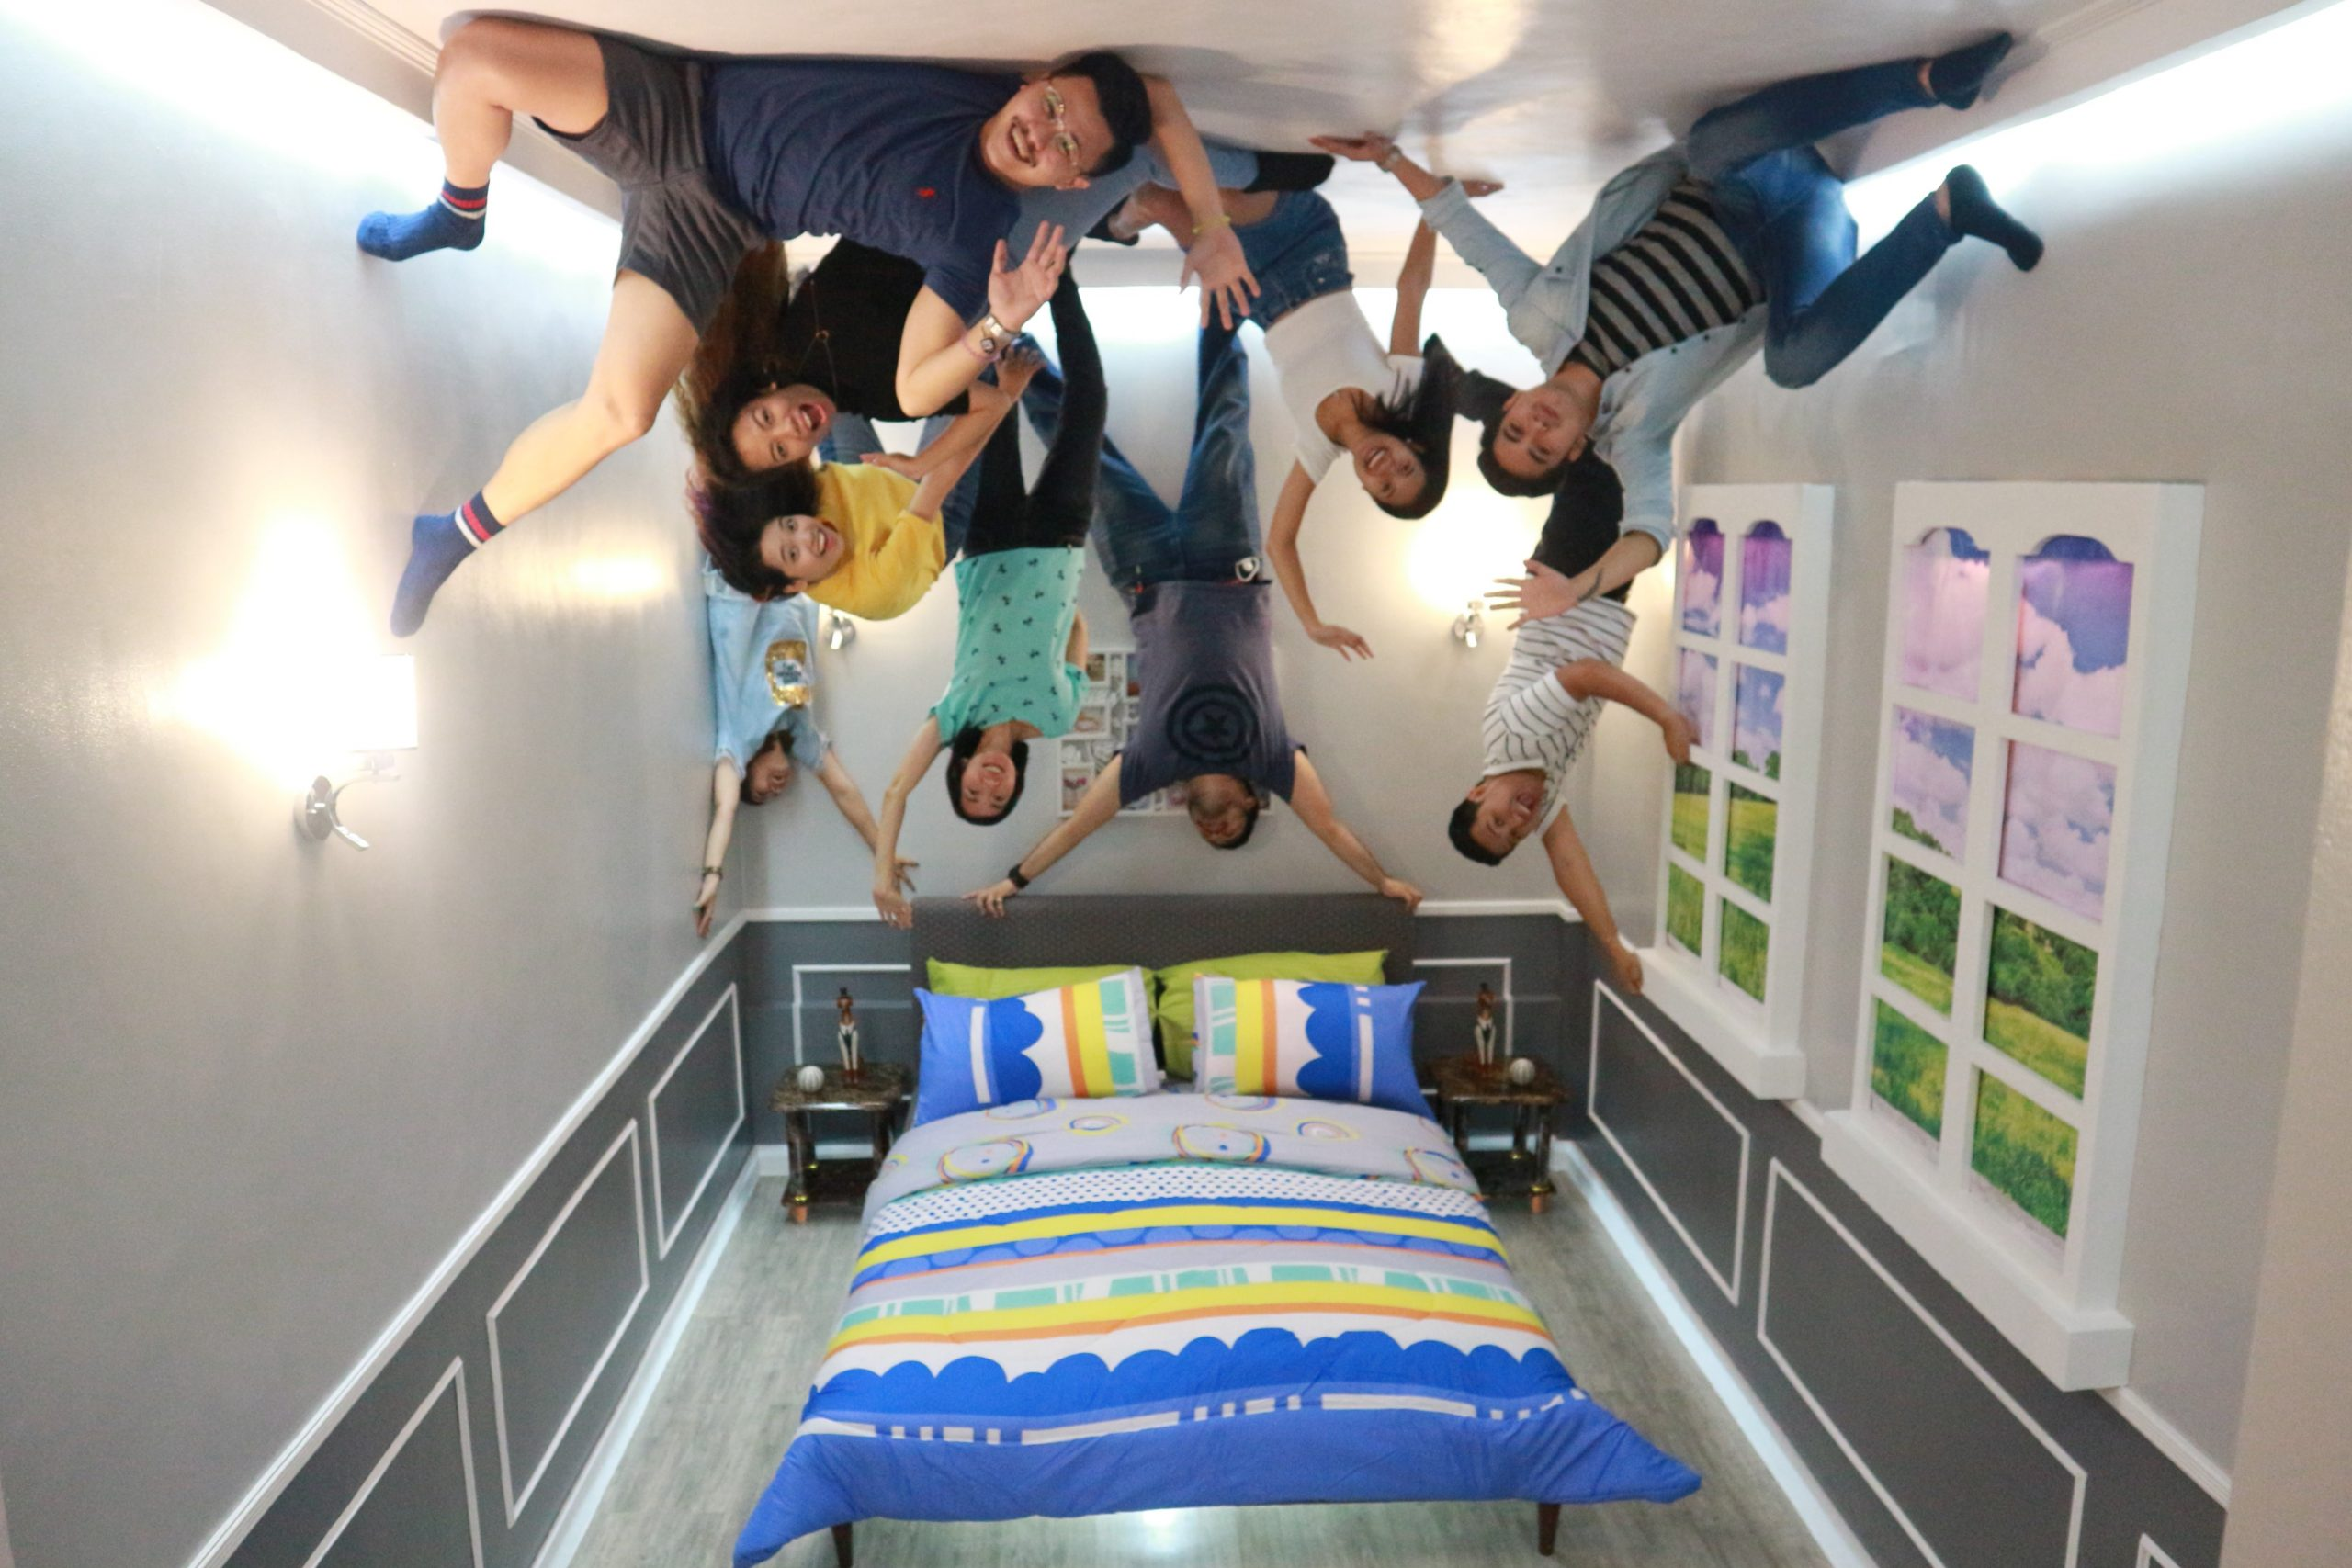 Check Out the First Upside Down House Museum in Davao on upside down exercise, upside down snowman, upside down sit-ups, upside down train, upside down ten mean, upside down dogs, upside down photography, upside down christmas,